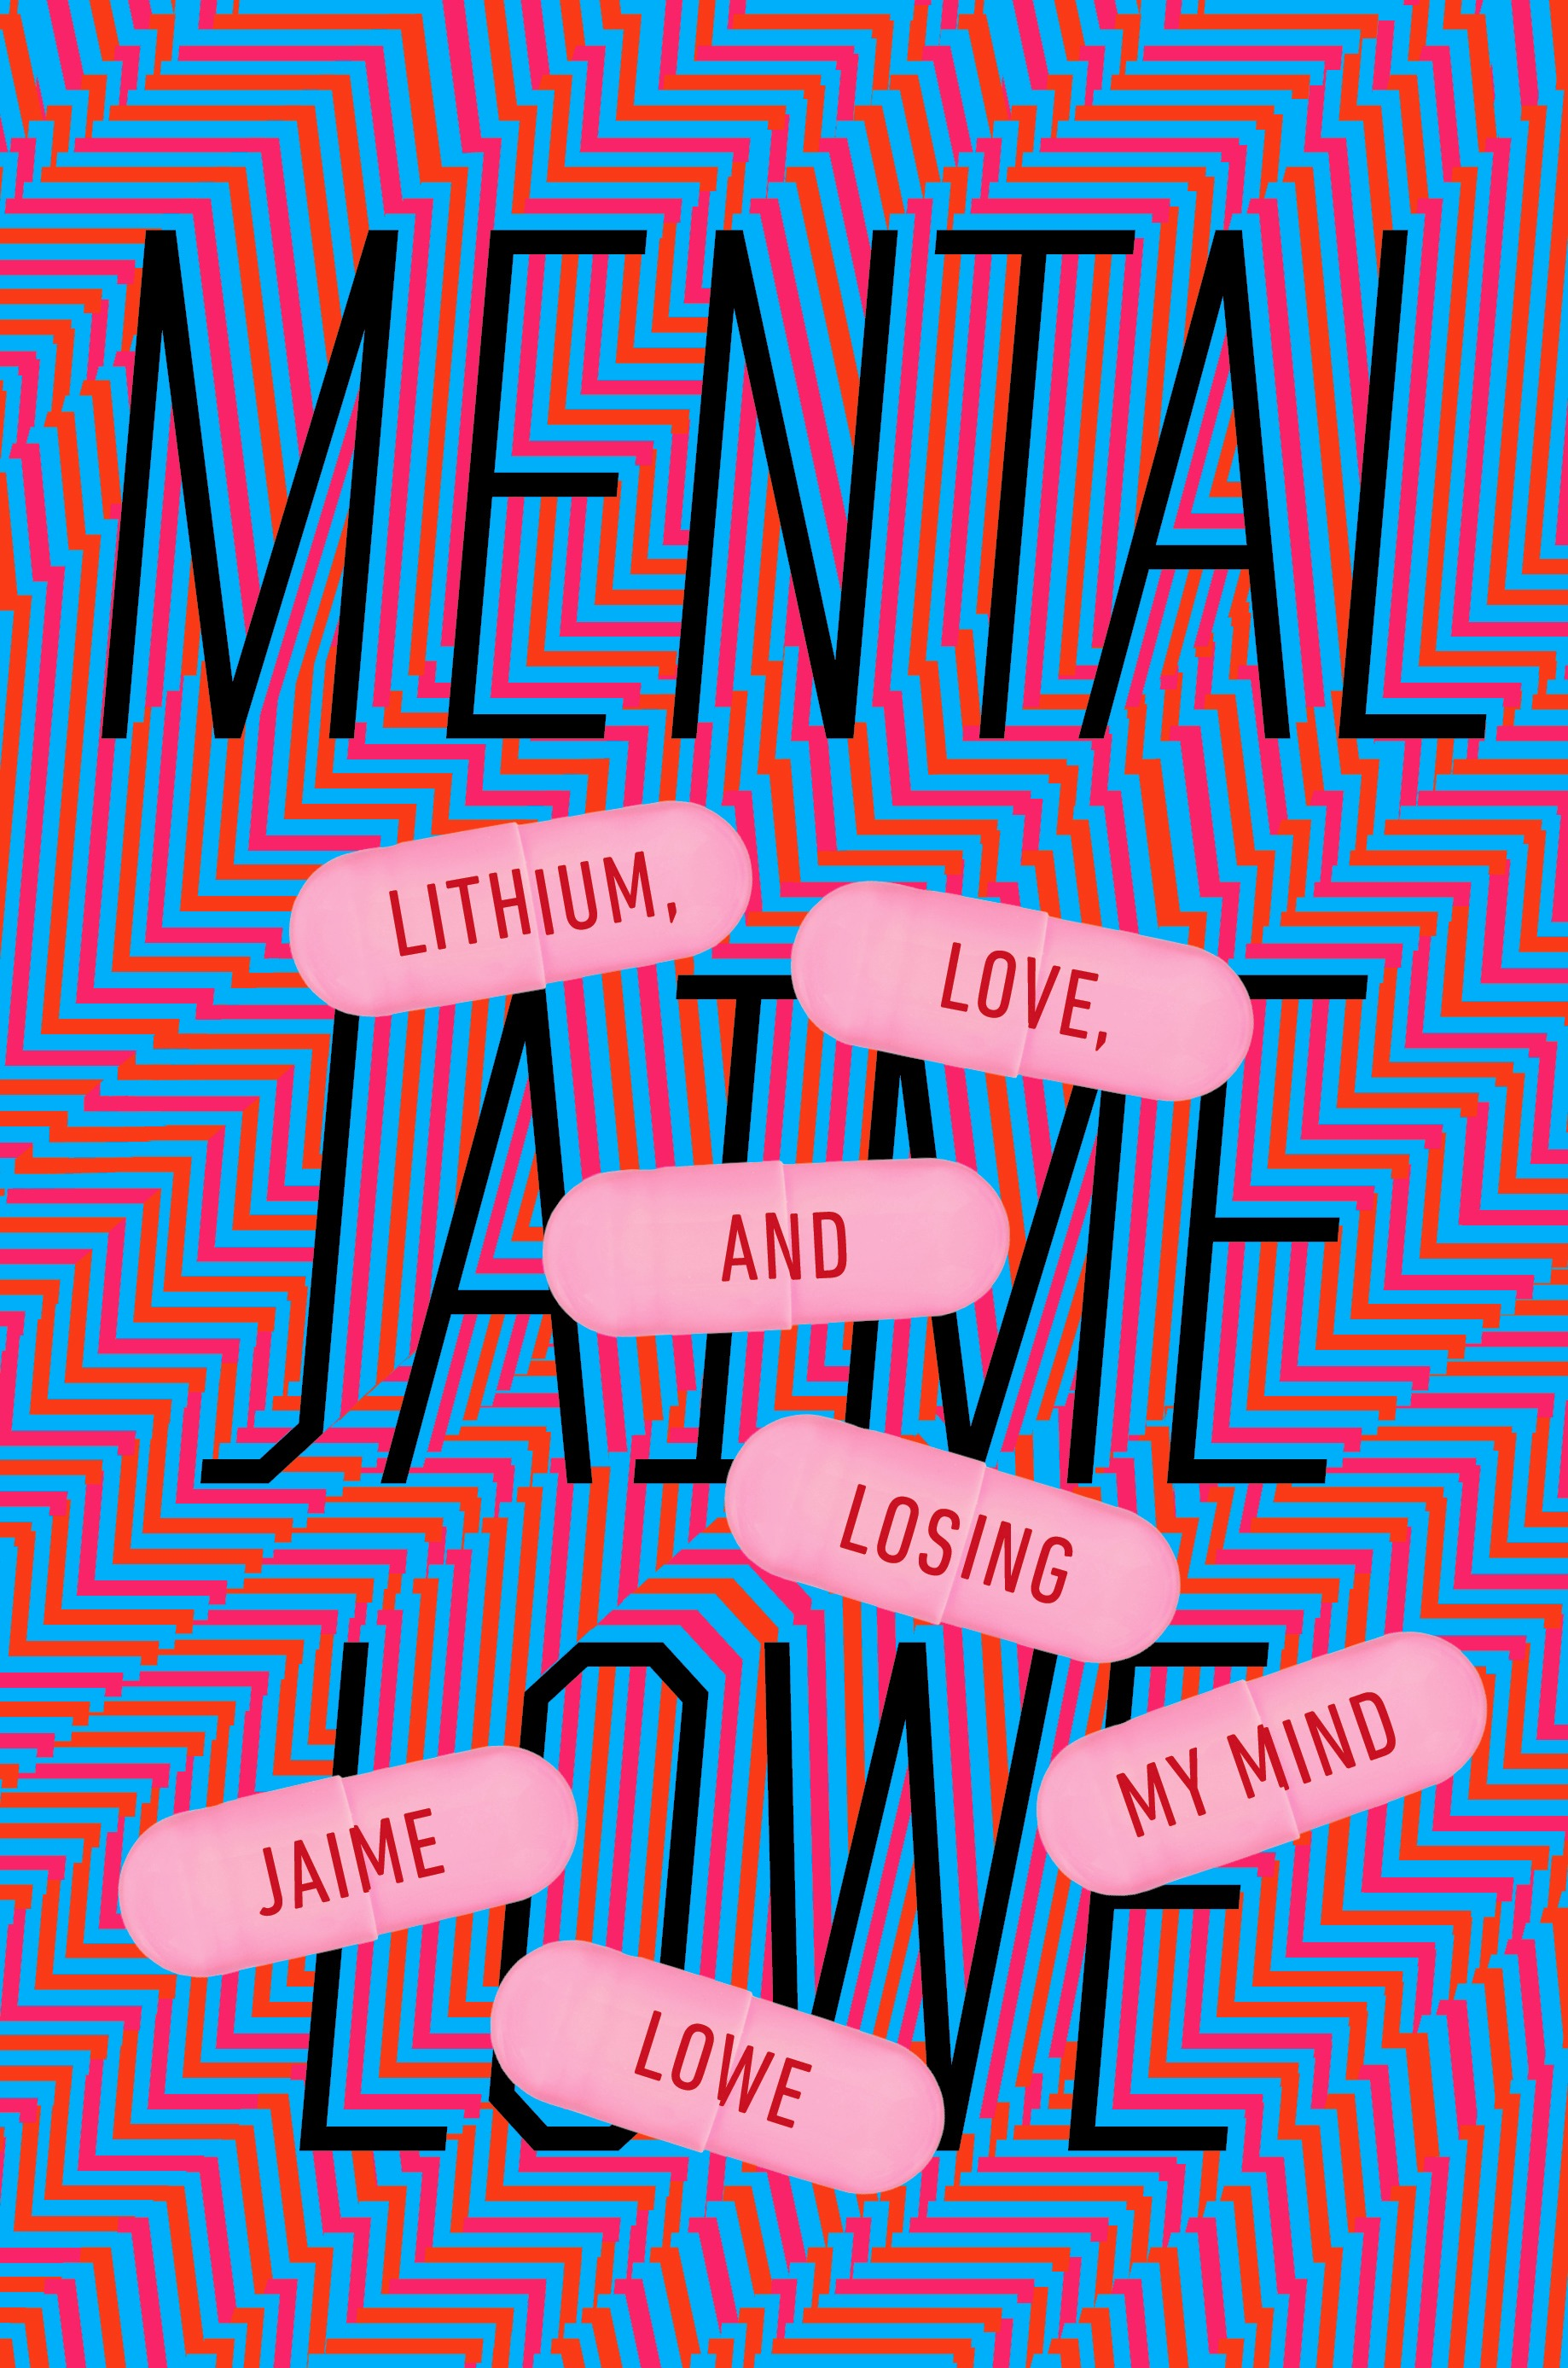 Book Launch: Mental: Lithium, Love, and Losing My Mind by Jaime Lowe — in conversation w/ Caity Weaver